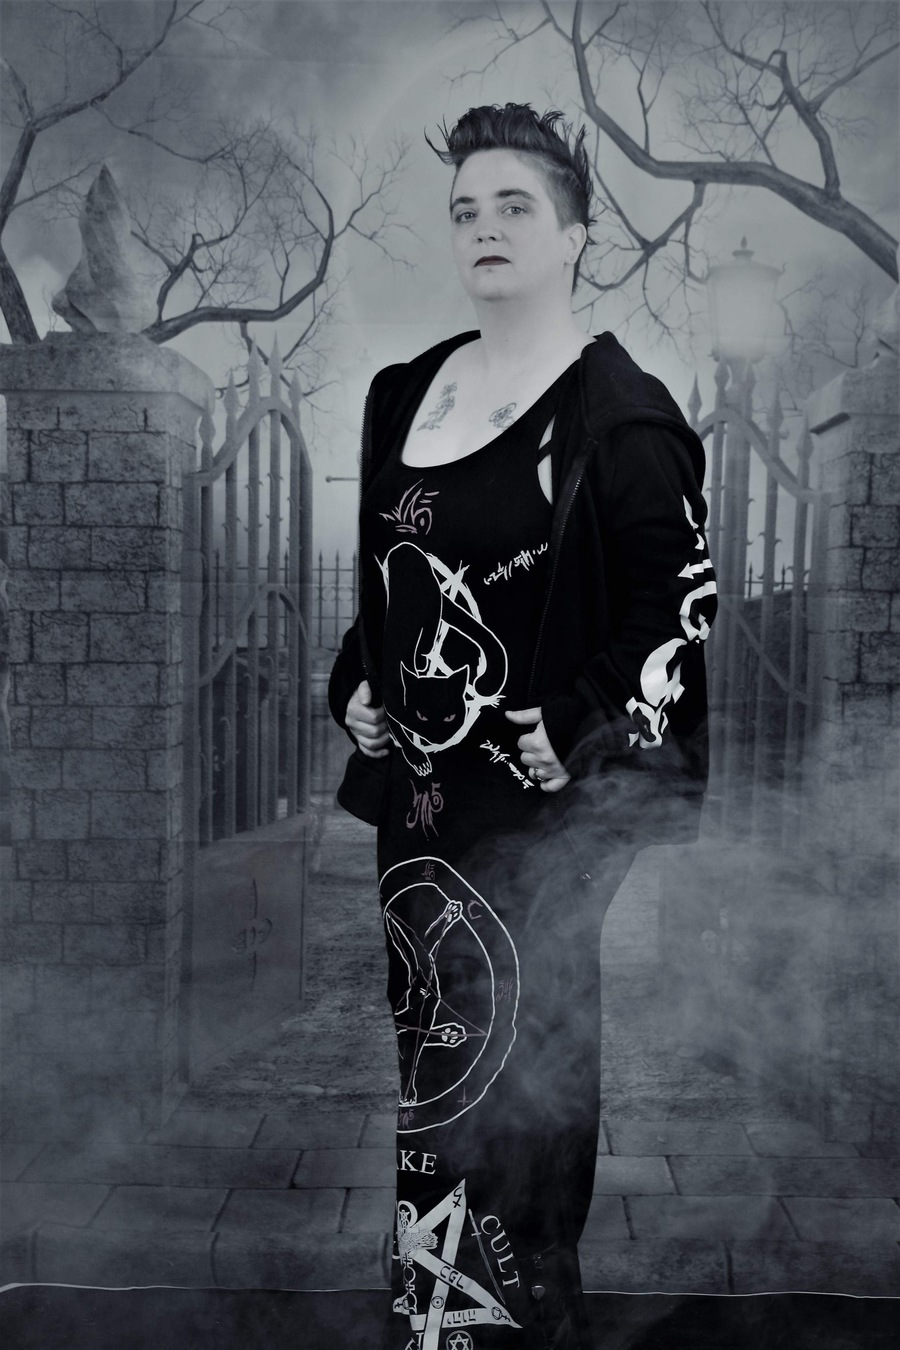 Goth Lady In The Mist / Photography by Raymond1, Model Anastasia Nyghtshade / Uploaded 22nd April 2018 @ 10:43 AM